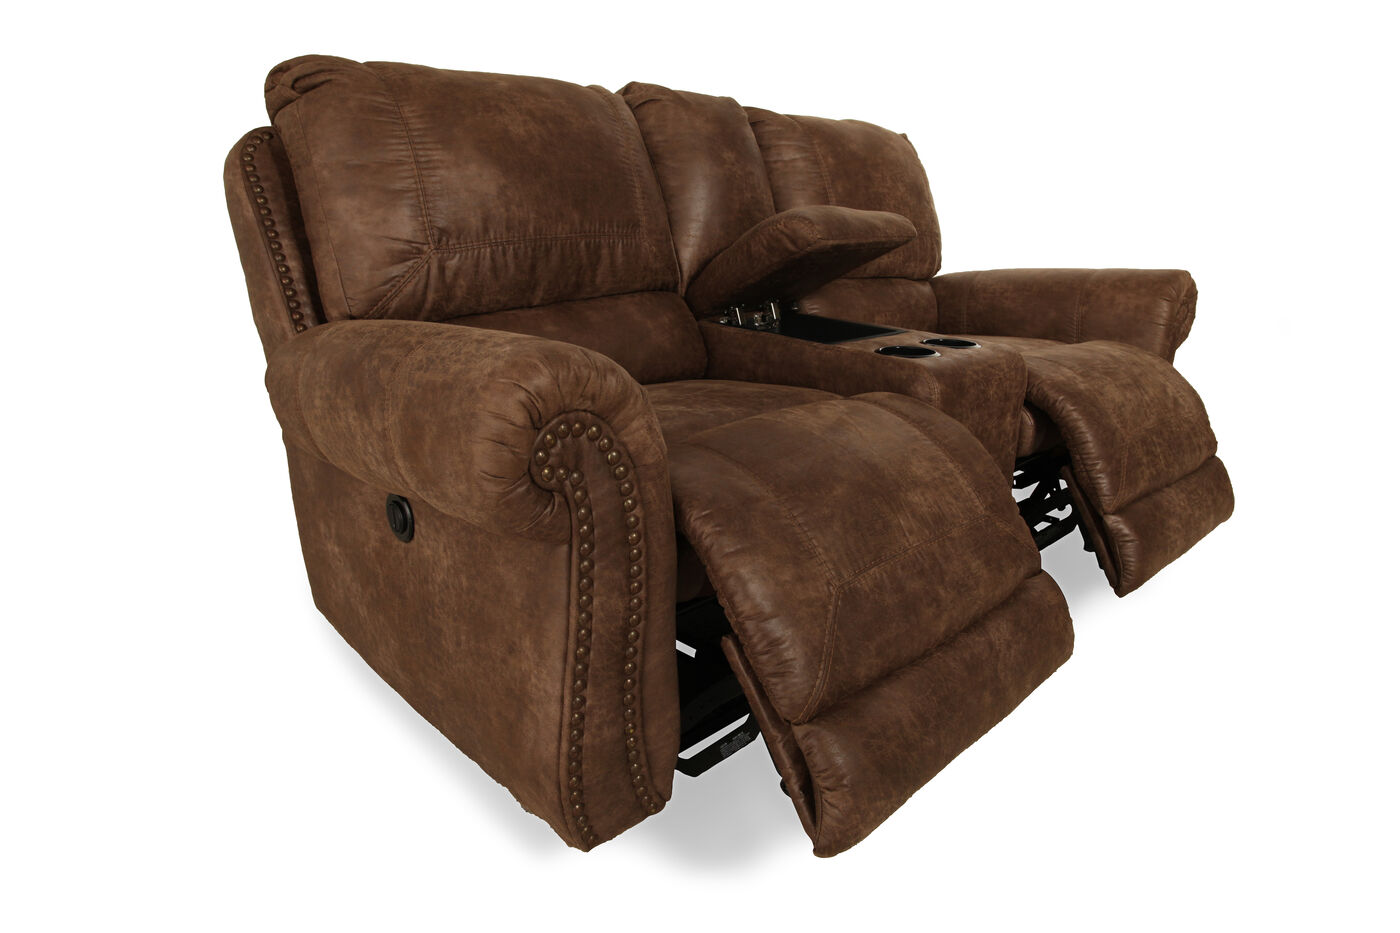 Power Reclining Microfiber 79 Loveseat With Console In Dark Brown Mathis Brothers Furniture